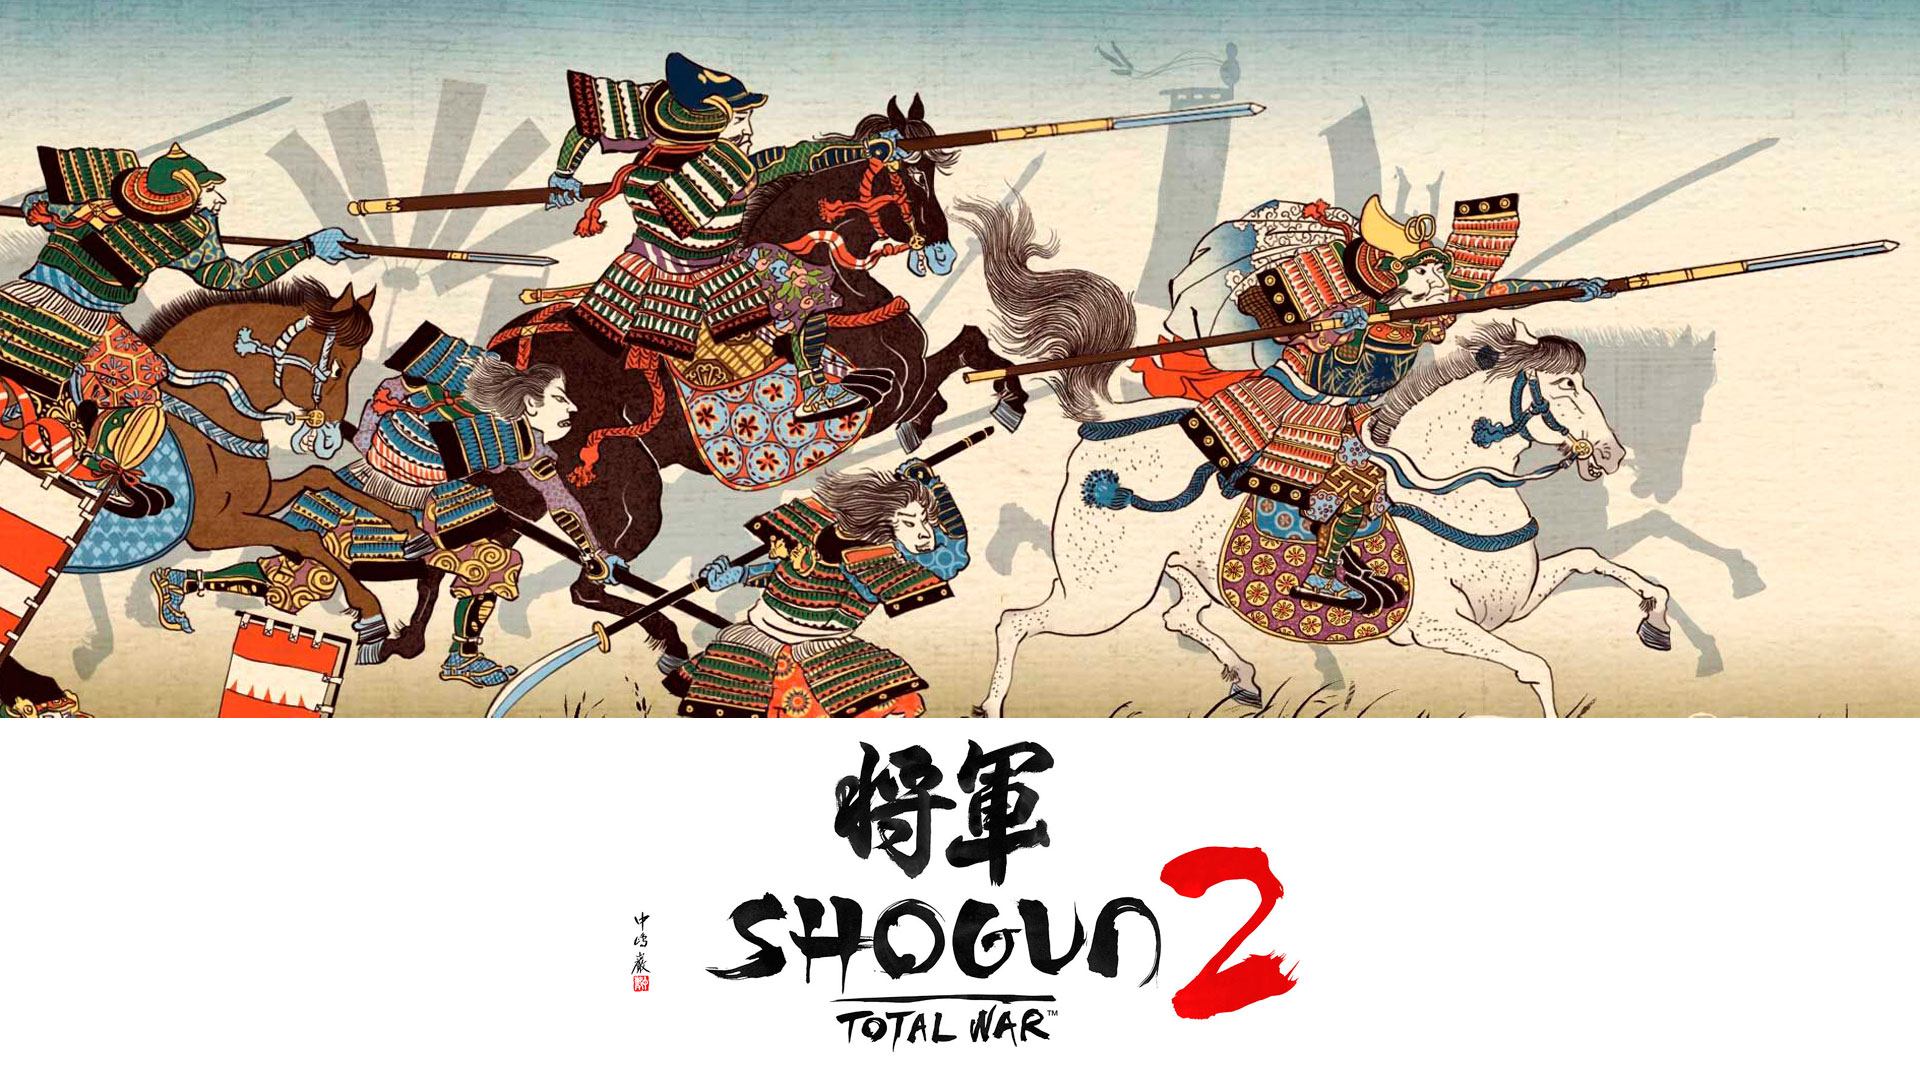 Shogun 2 Wallpaper Posted By Ethan Simpson